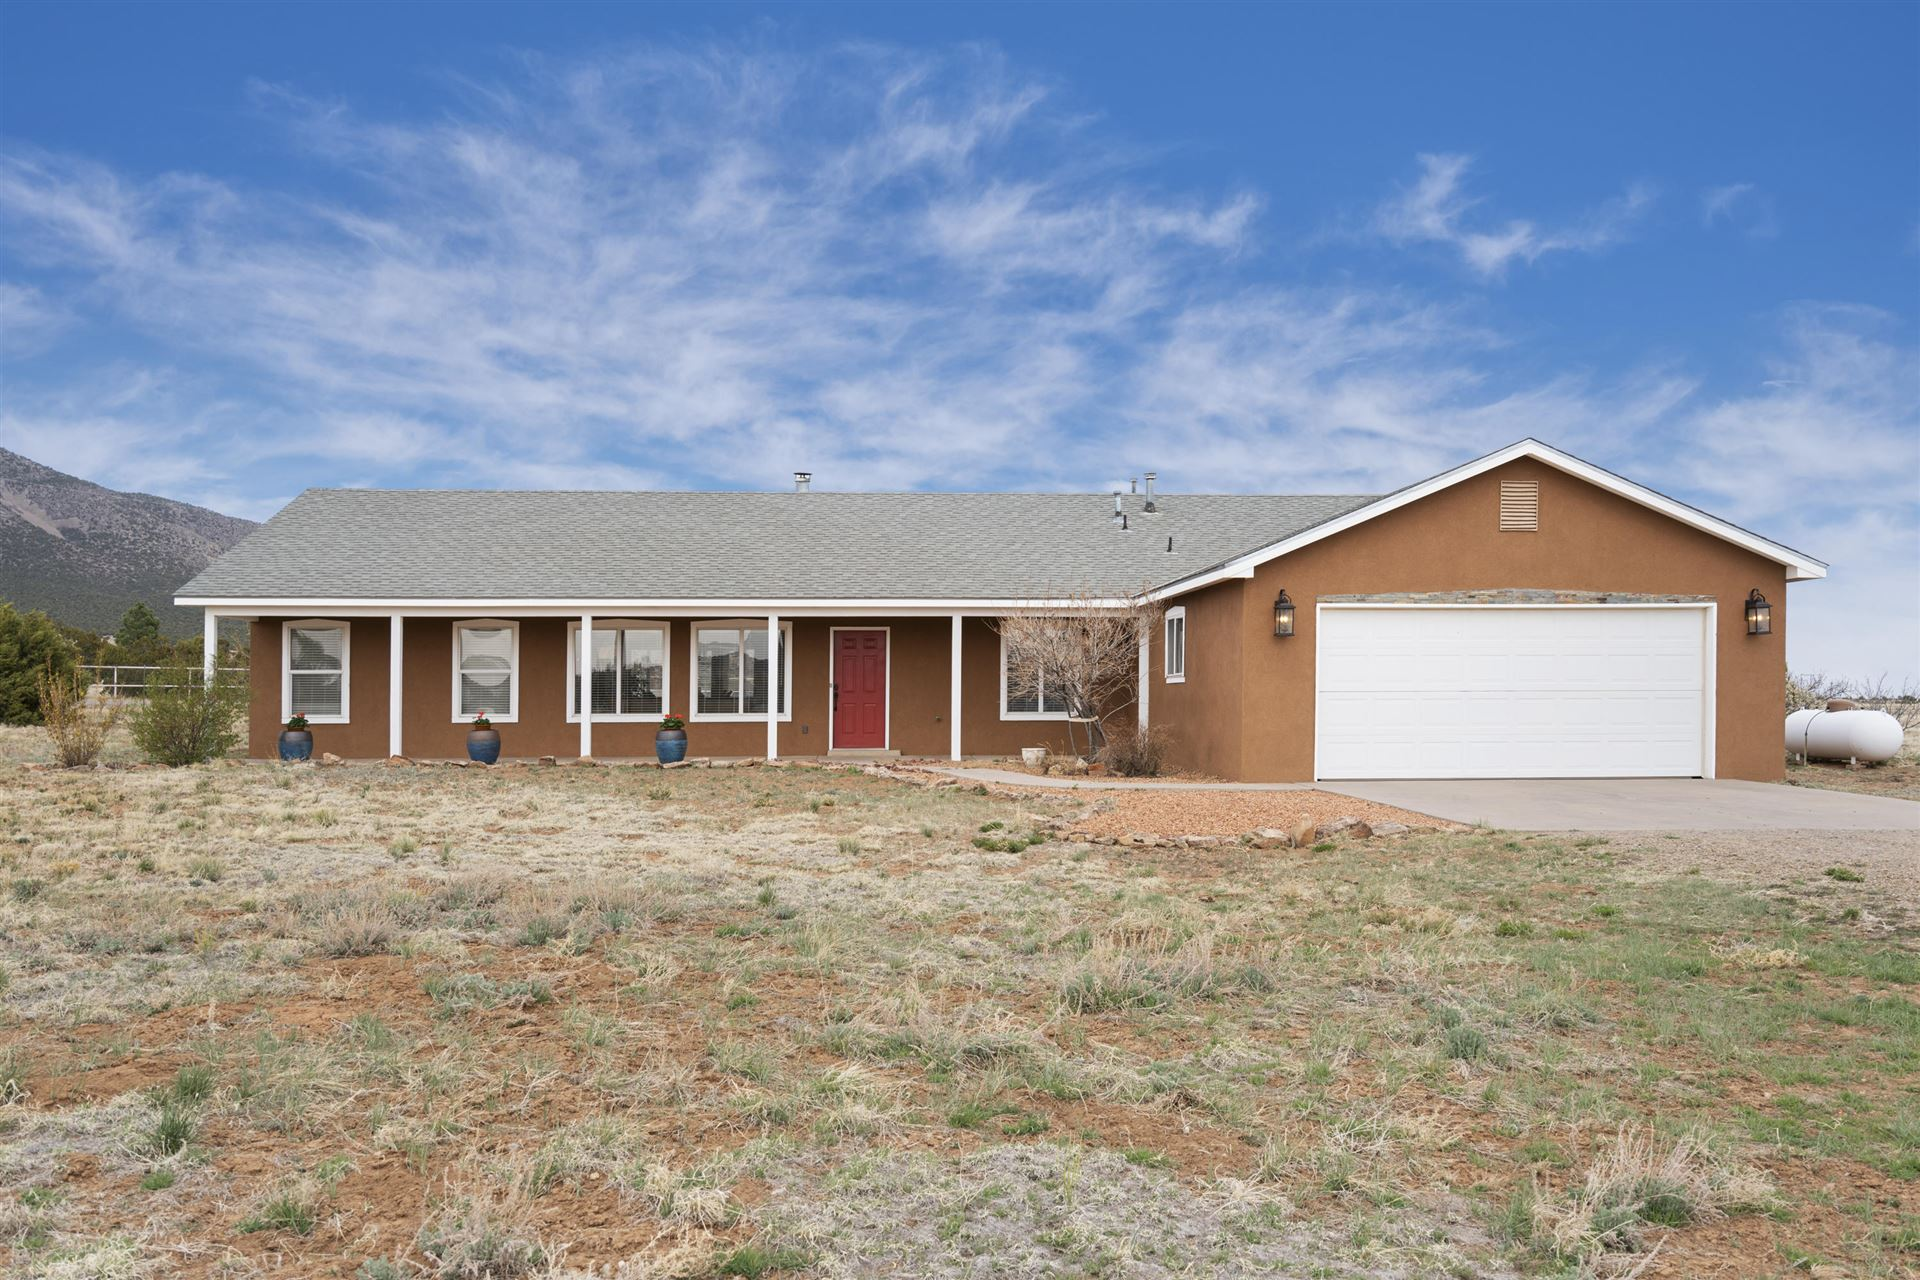 Photo for 31 SAN MIGUEL Drive, Edgewood, NM 87015 (MLS # 989925)